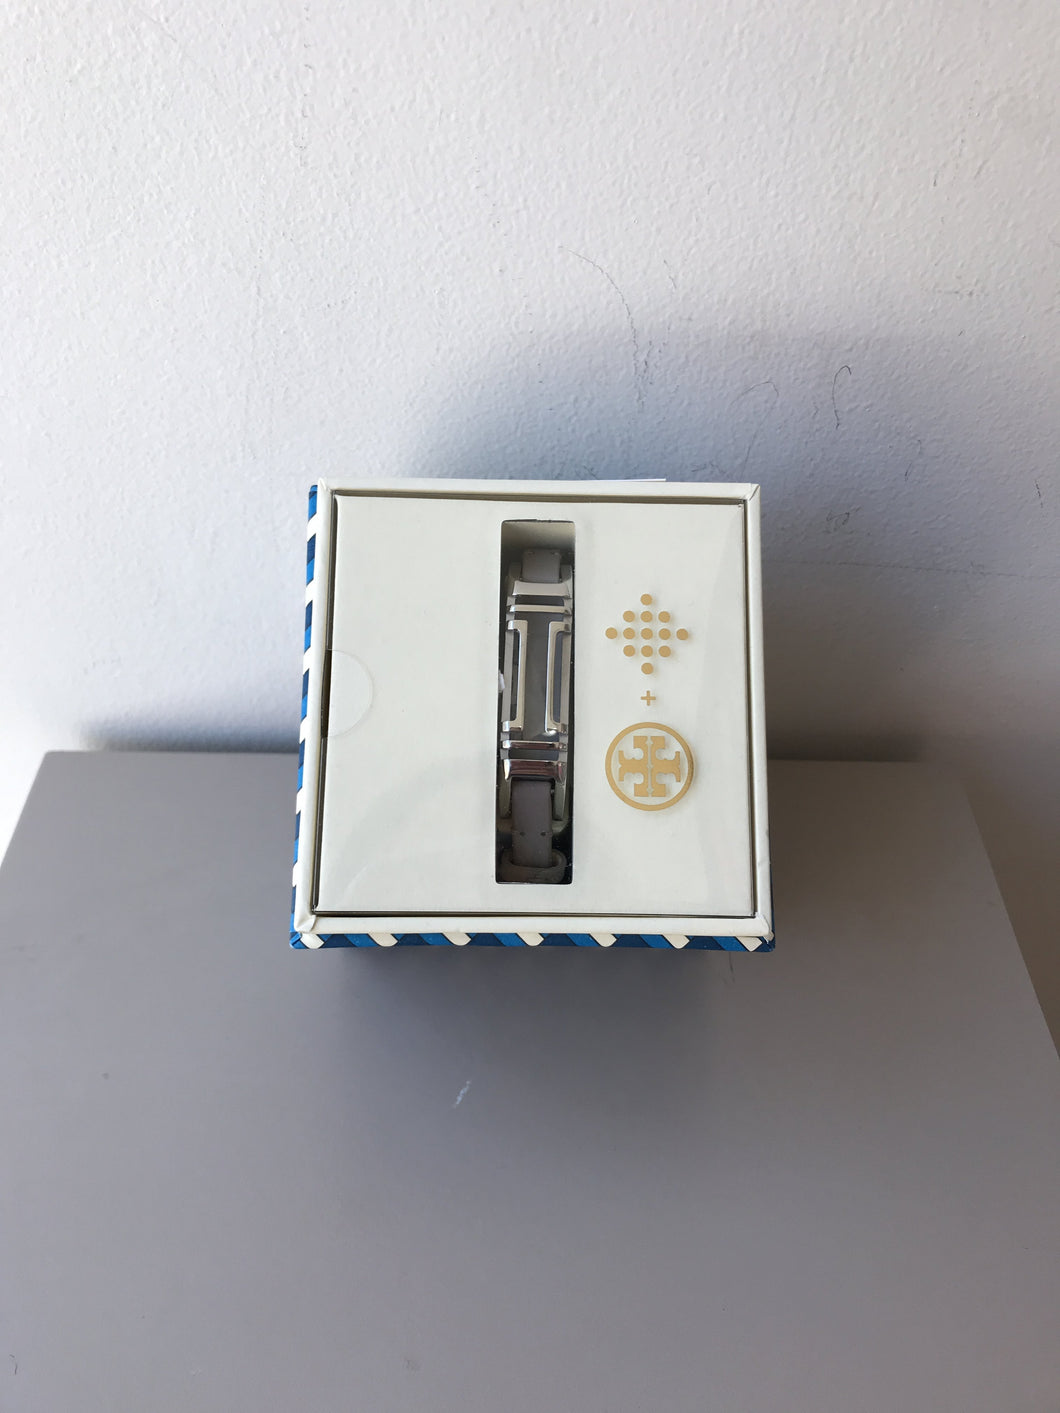 Tory Burch for FitBit double wrap leather bracelet NWT - My Girlfriend's Wardrobe York Pa